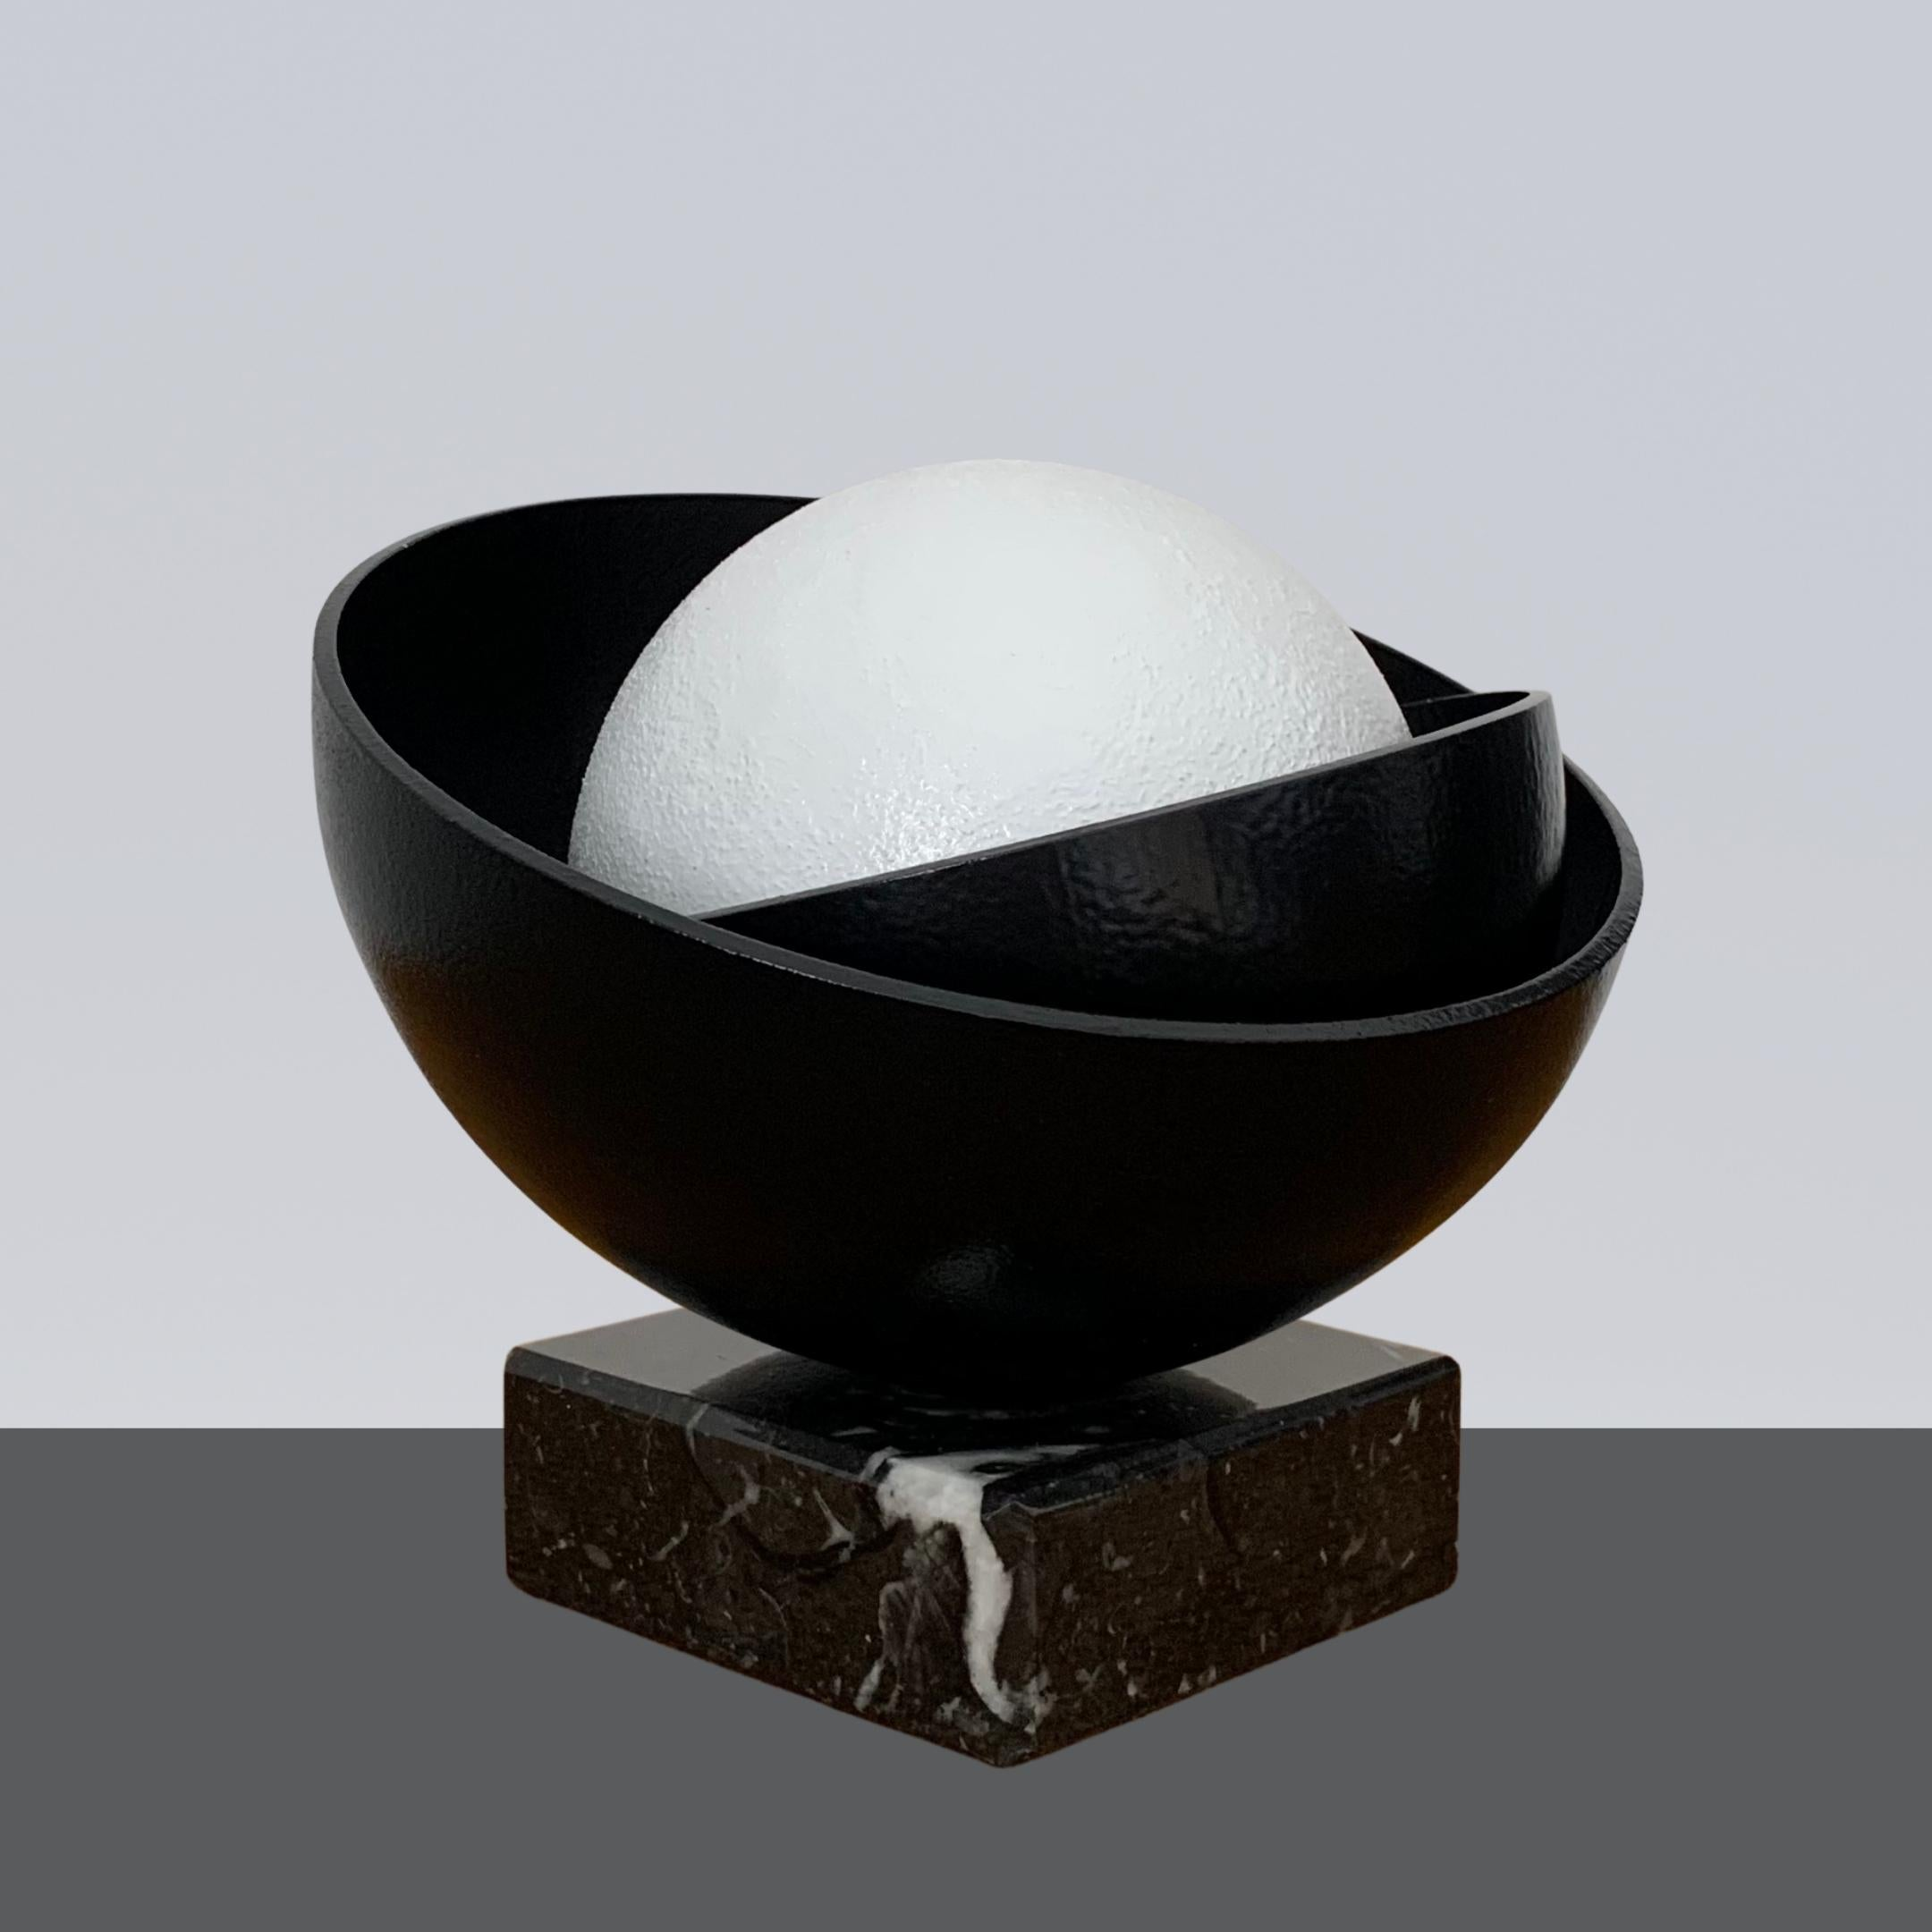 Black Shell with Big White Pearl Steel Minimalistic Abstract Sculpture